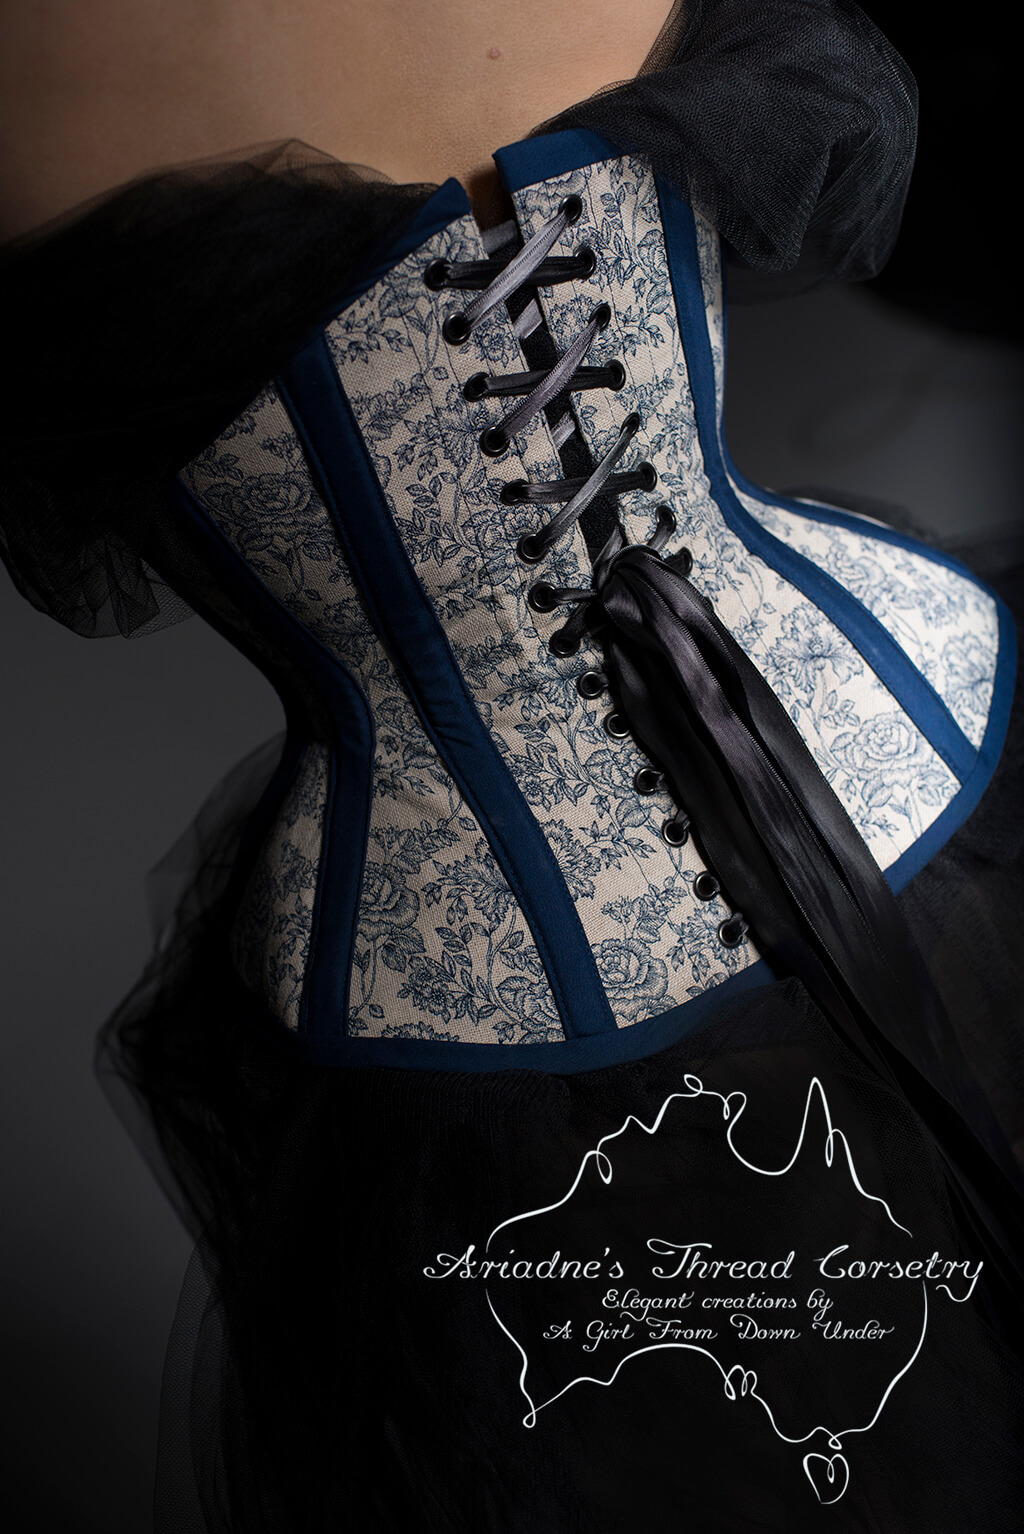 Underbust corset by Ariadne's Thread.